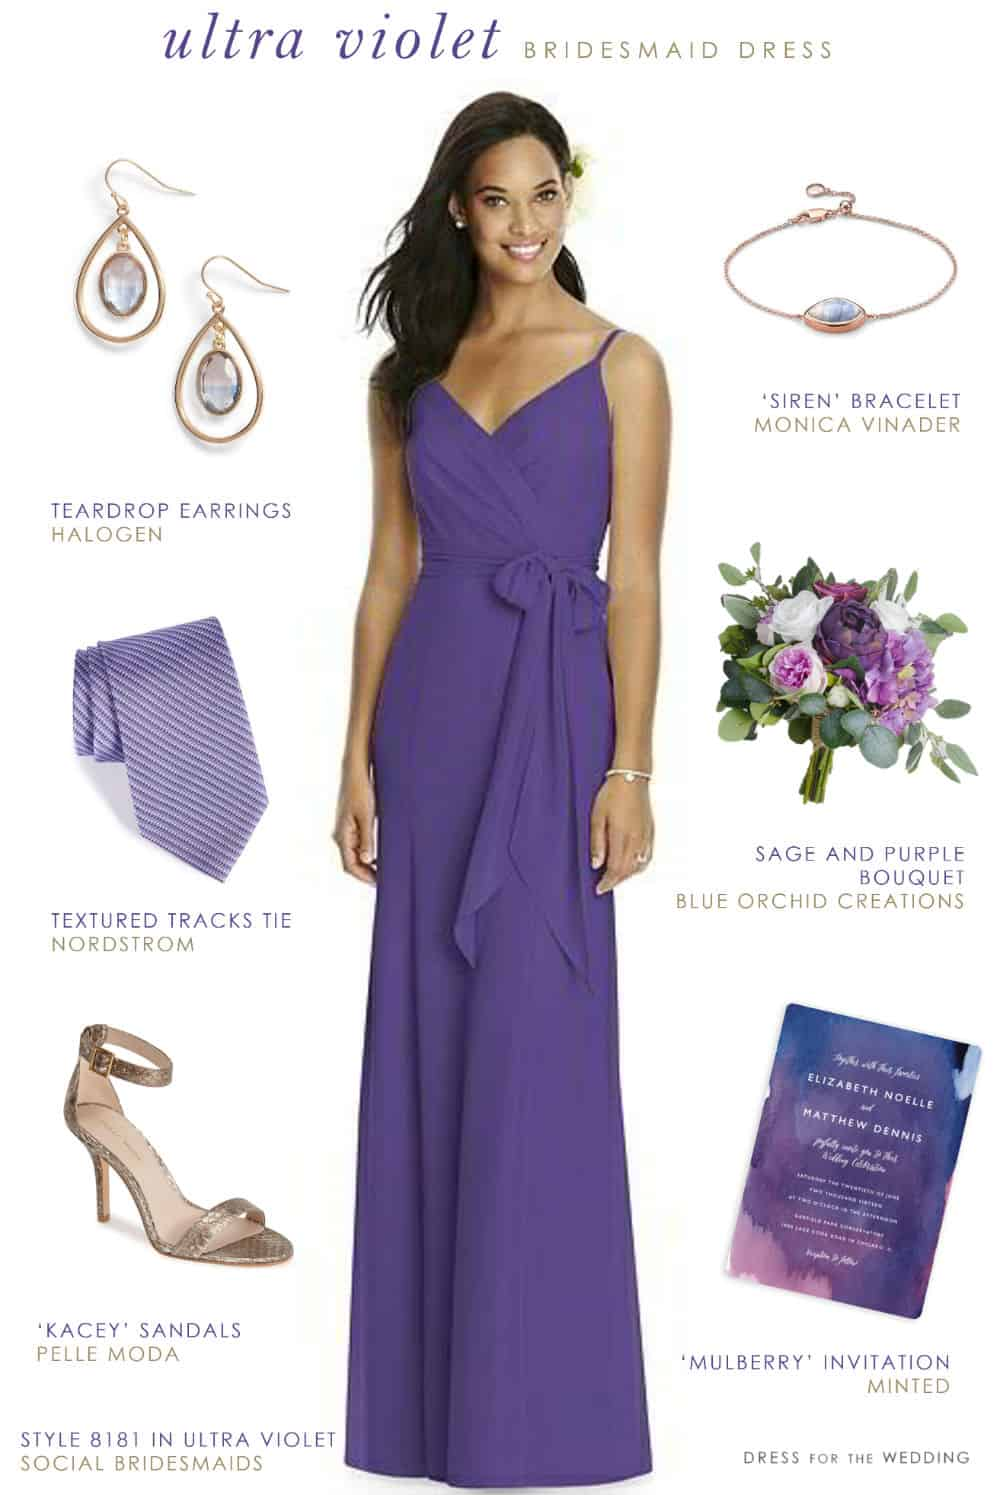 Ultra Violet Bridesmaid Dress | Dress for the Wedding